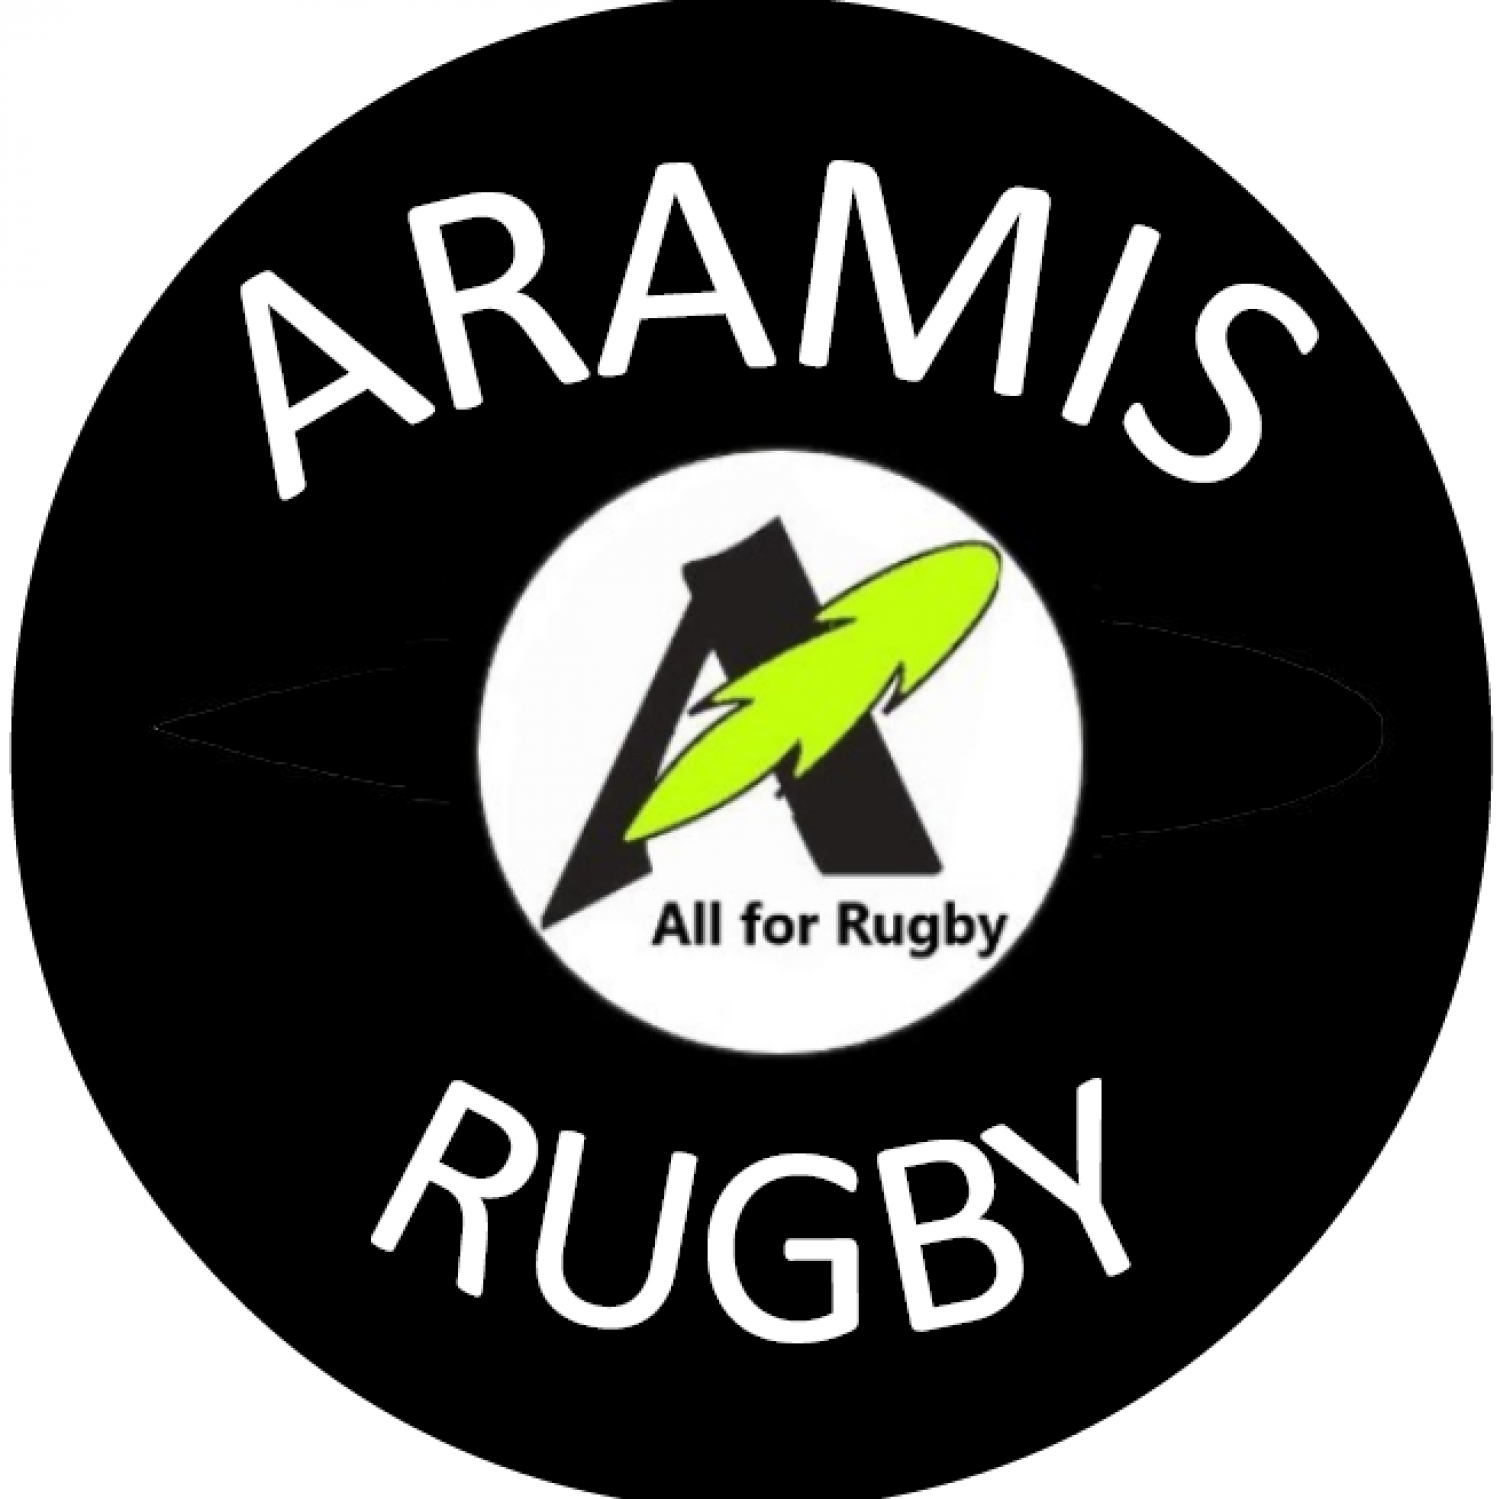 Aramis Rugby Infographic